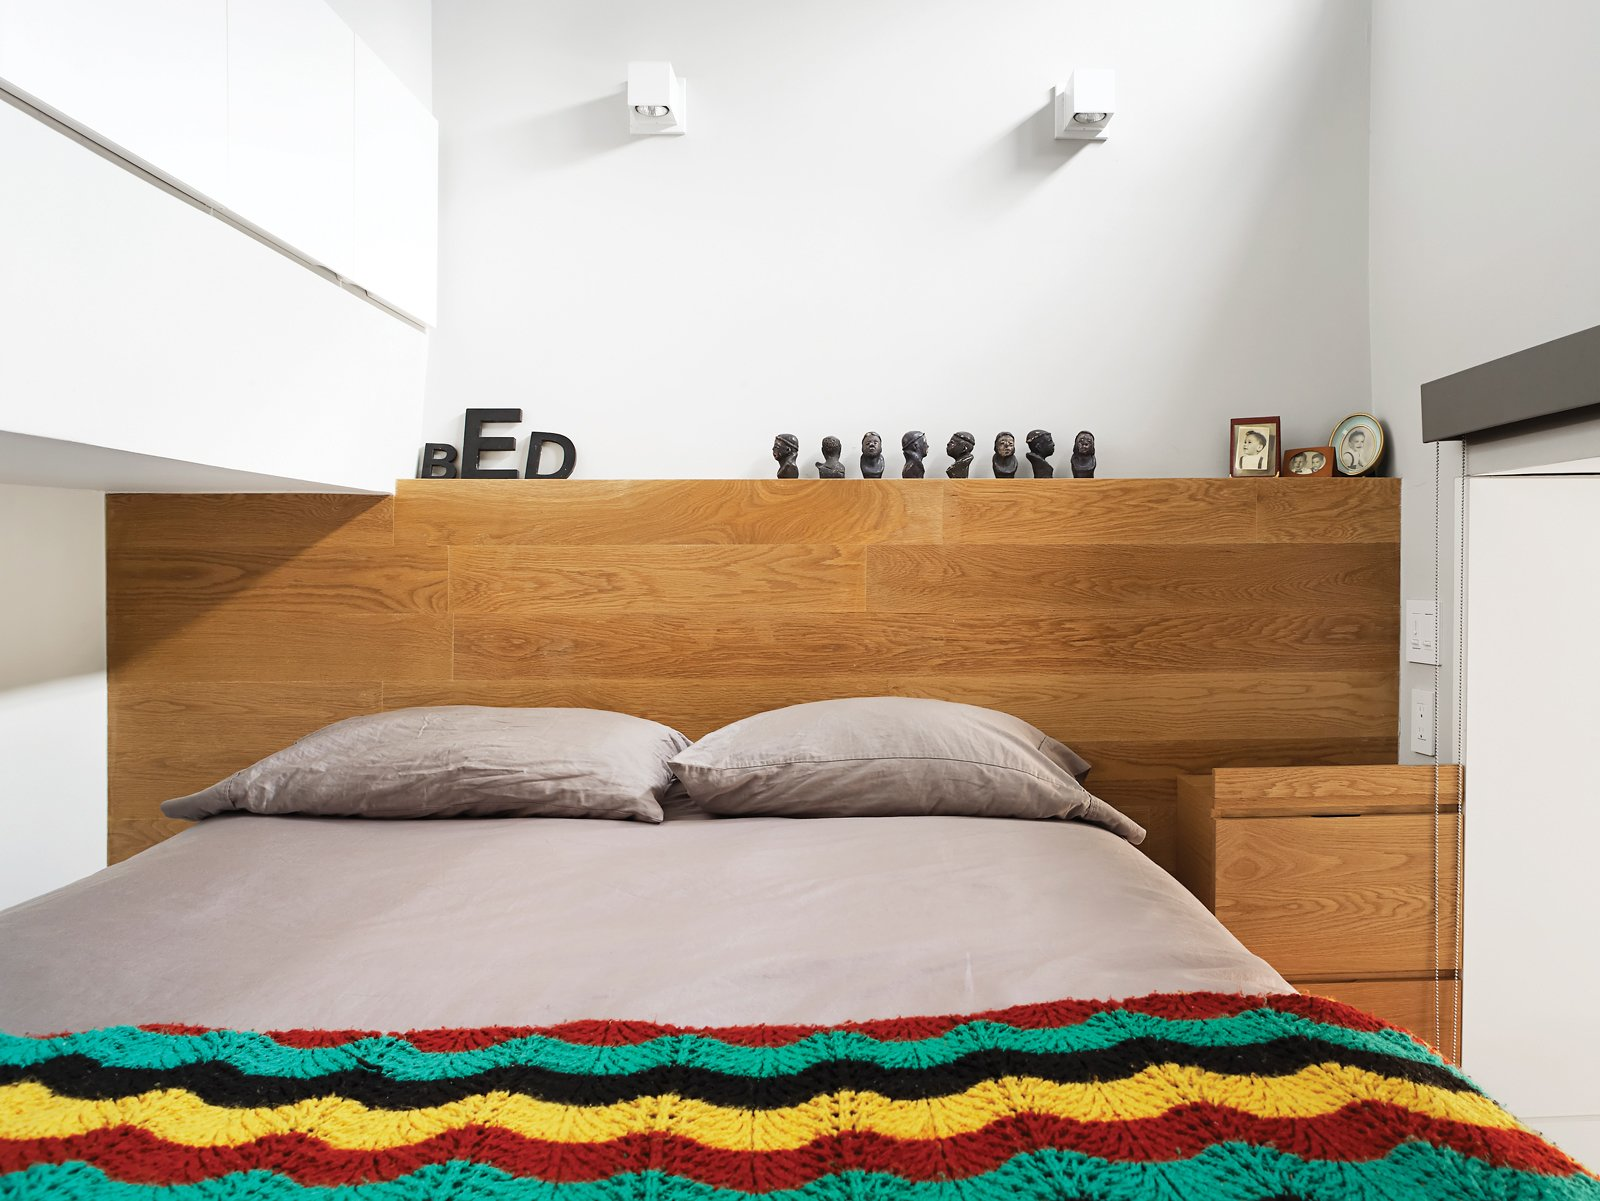 To maximize space, both sides of the bed are outfitted with wall sockets and reading lights. Tagged: Bedroom and Bed. The Manhattan Transformation - Photo 6 of 12